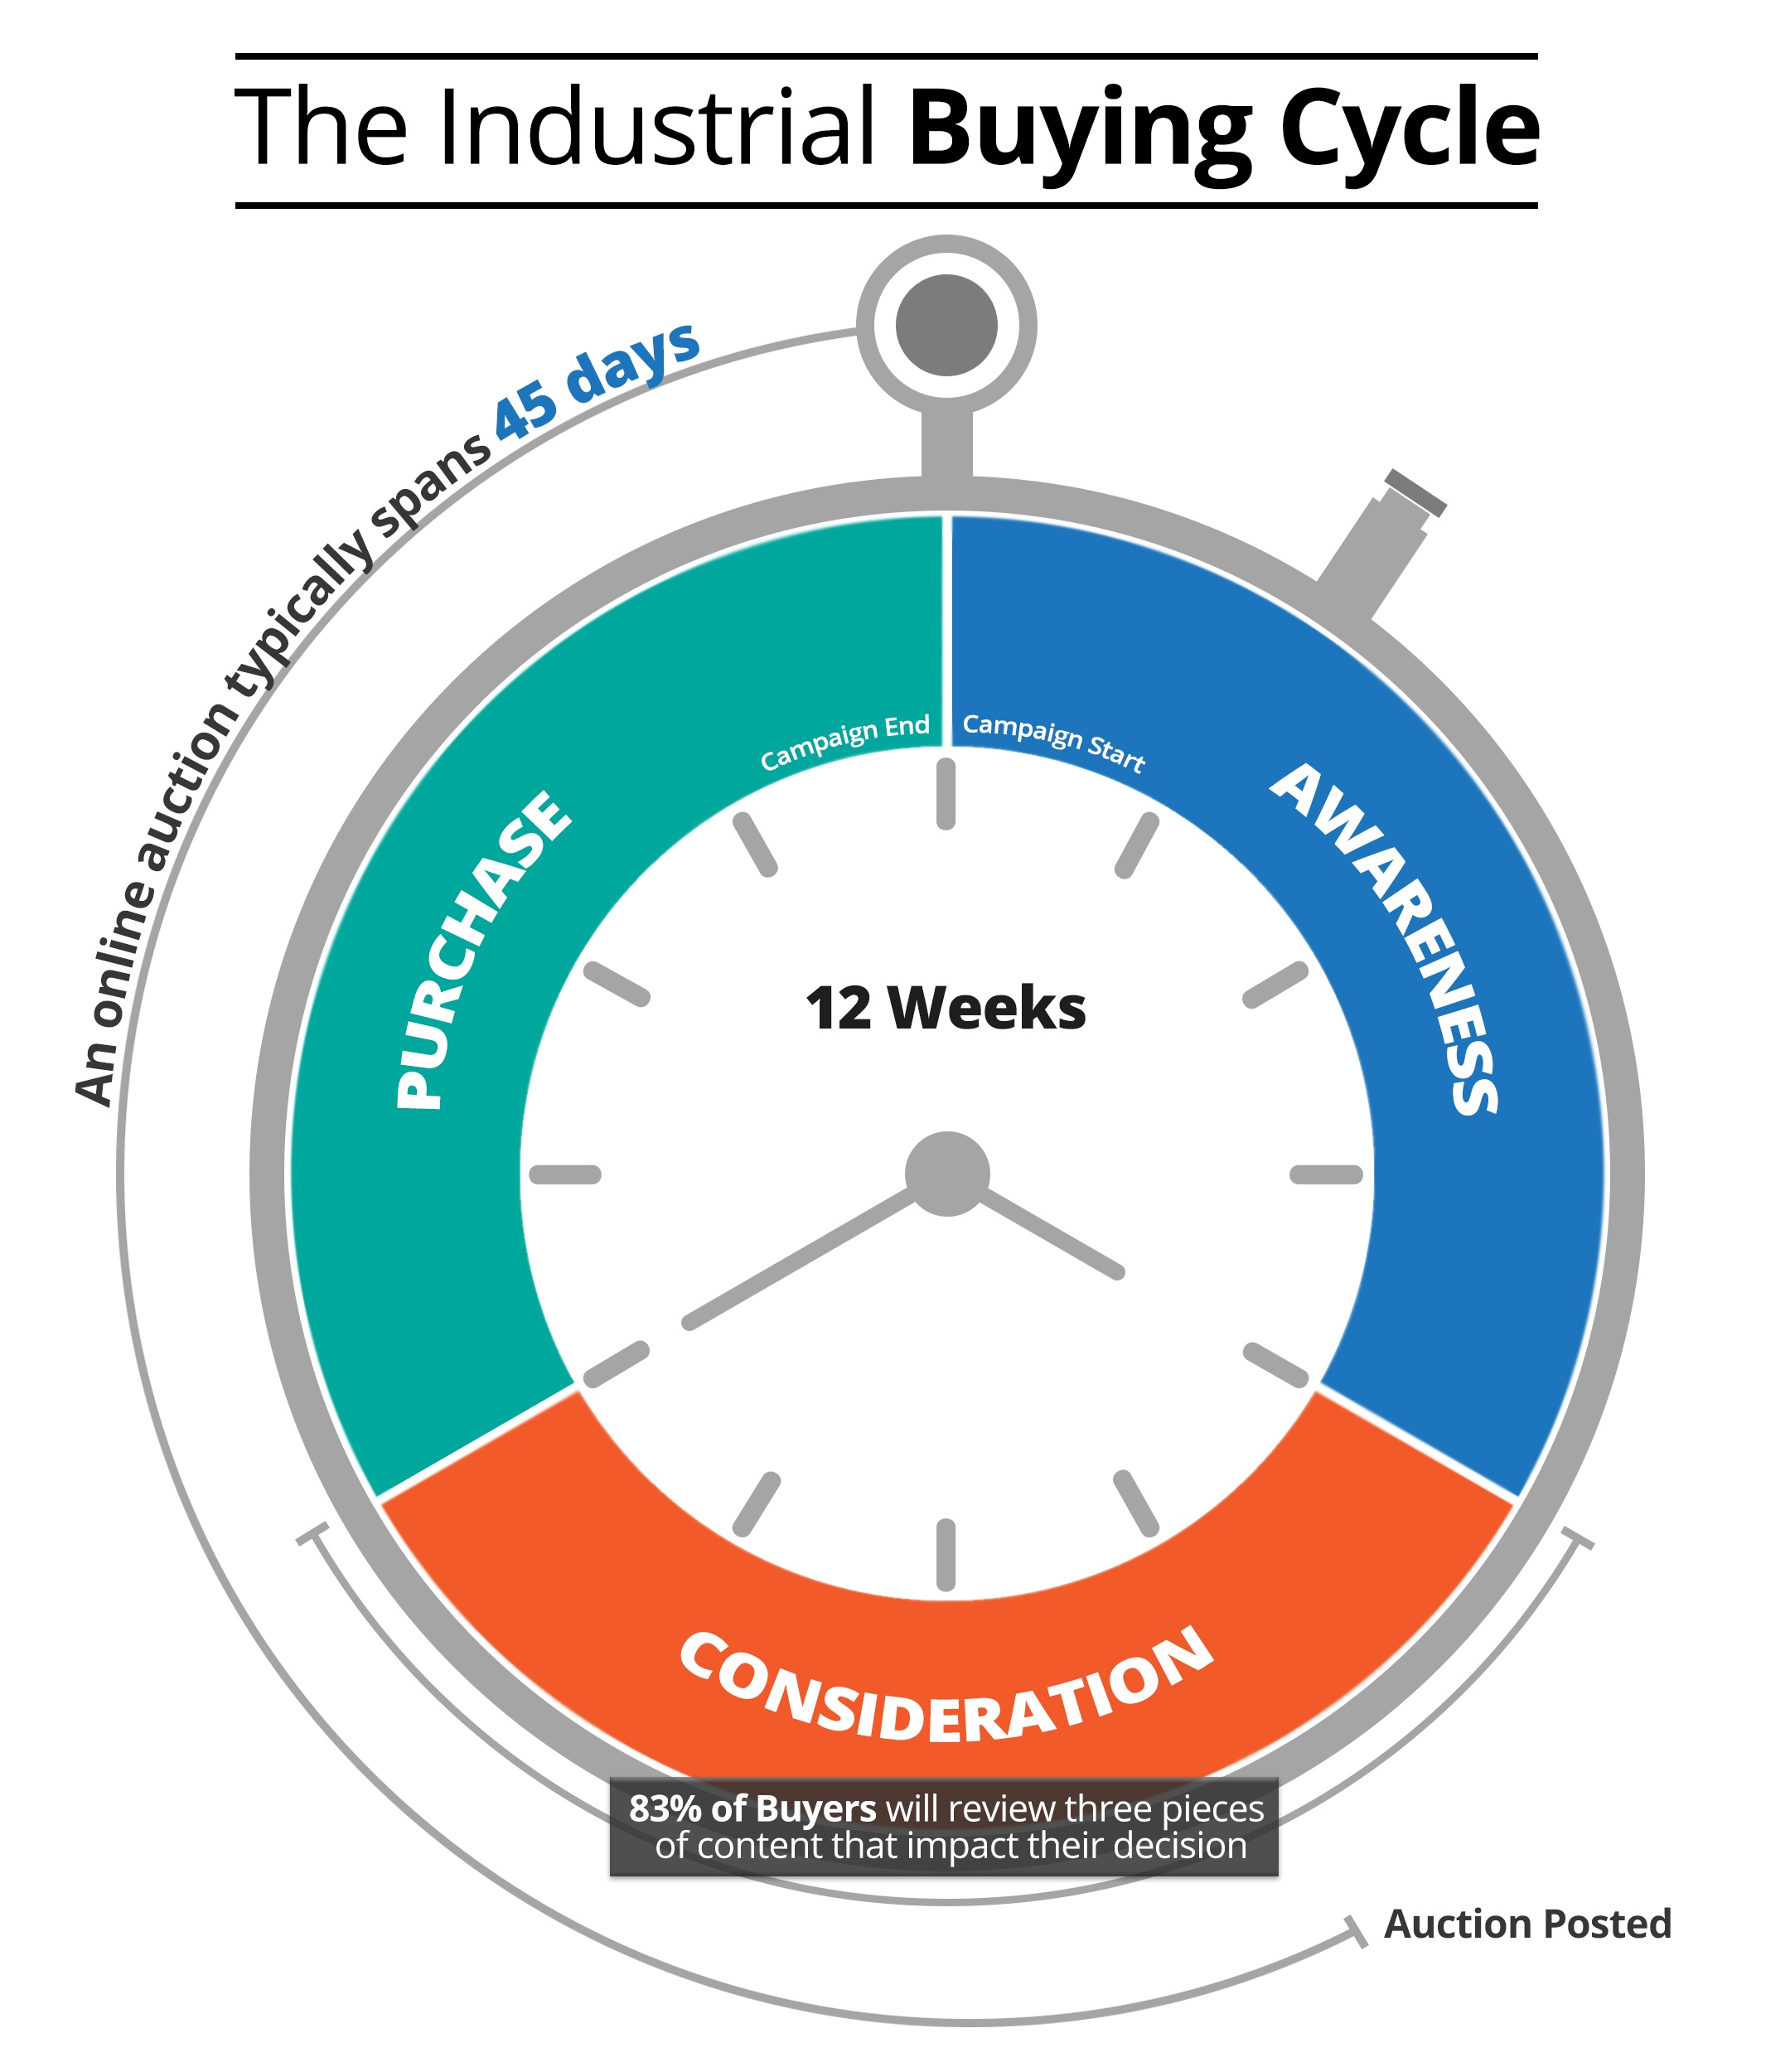 Industrial Buying Cycle Infographic